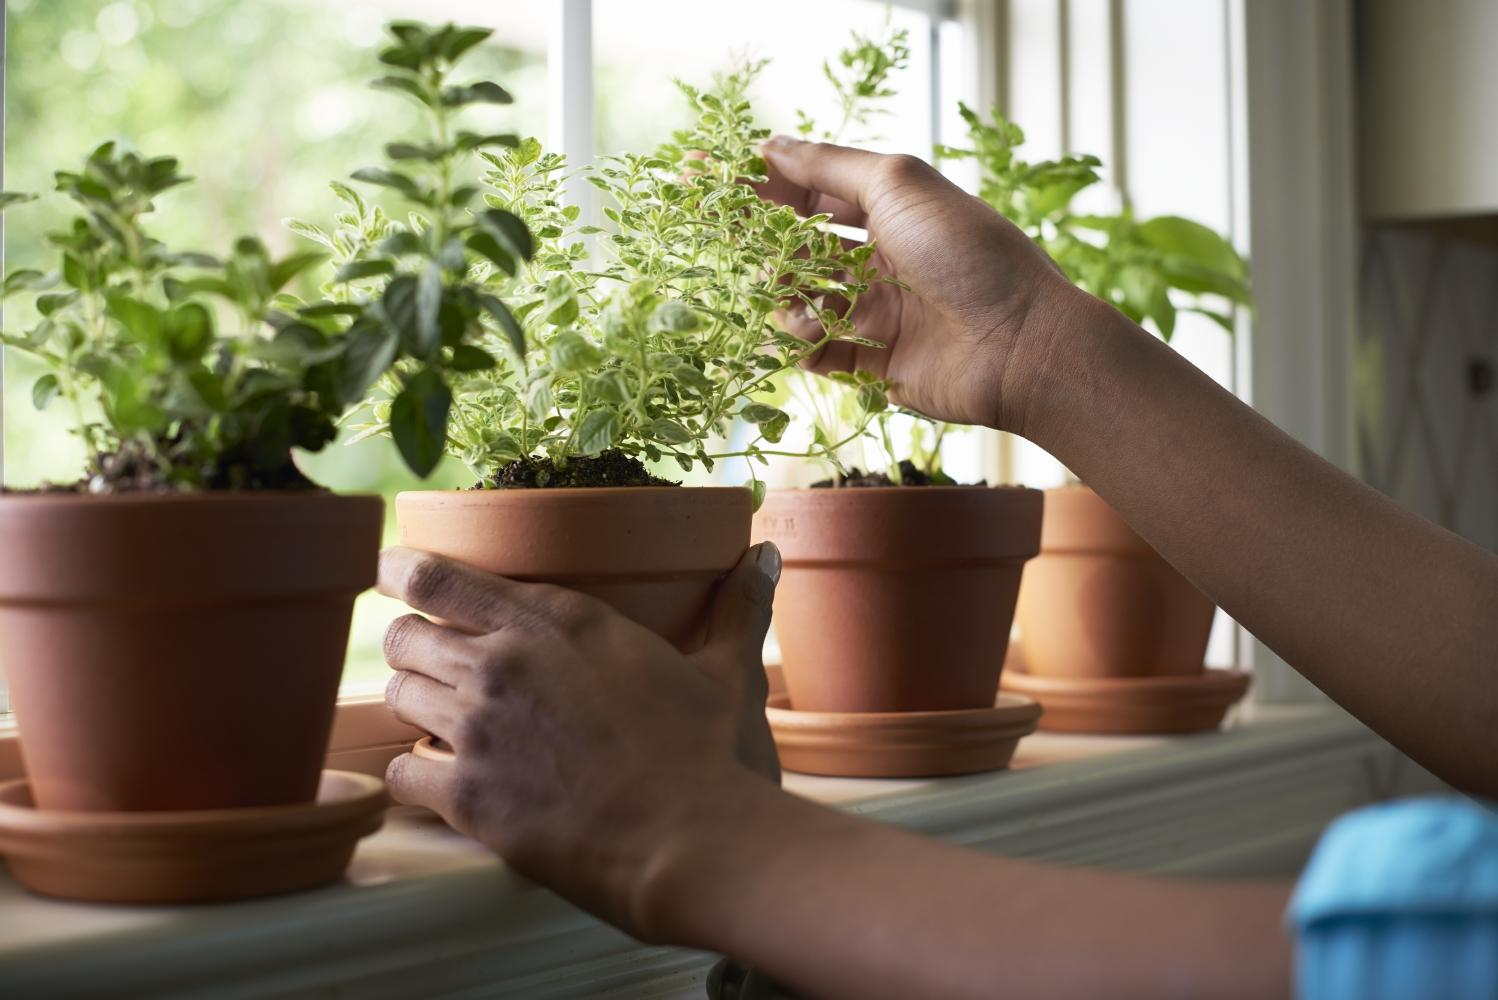 A sunny windowsill is the perfect place for an indoor herb garden.